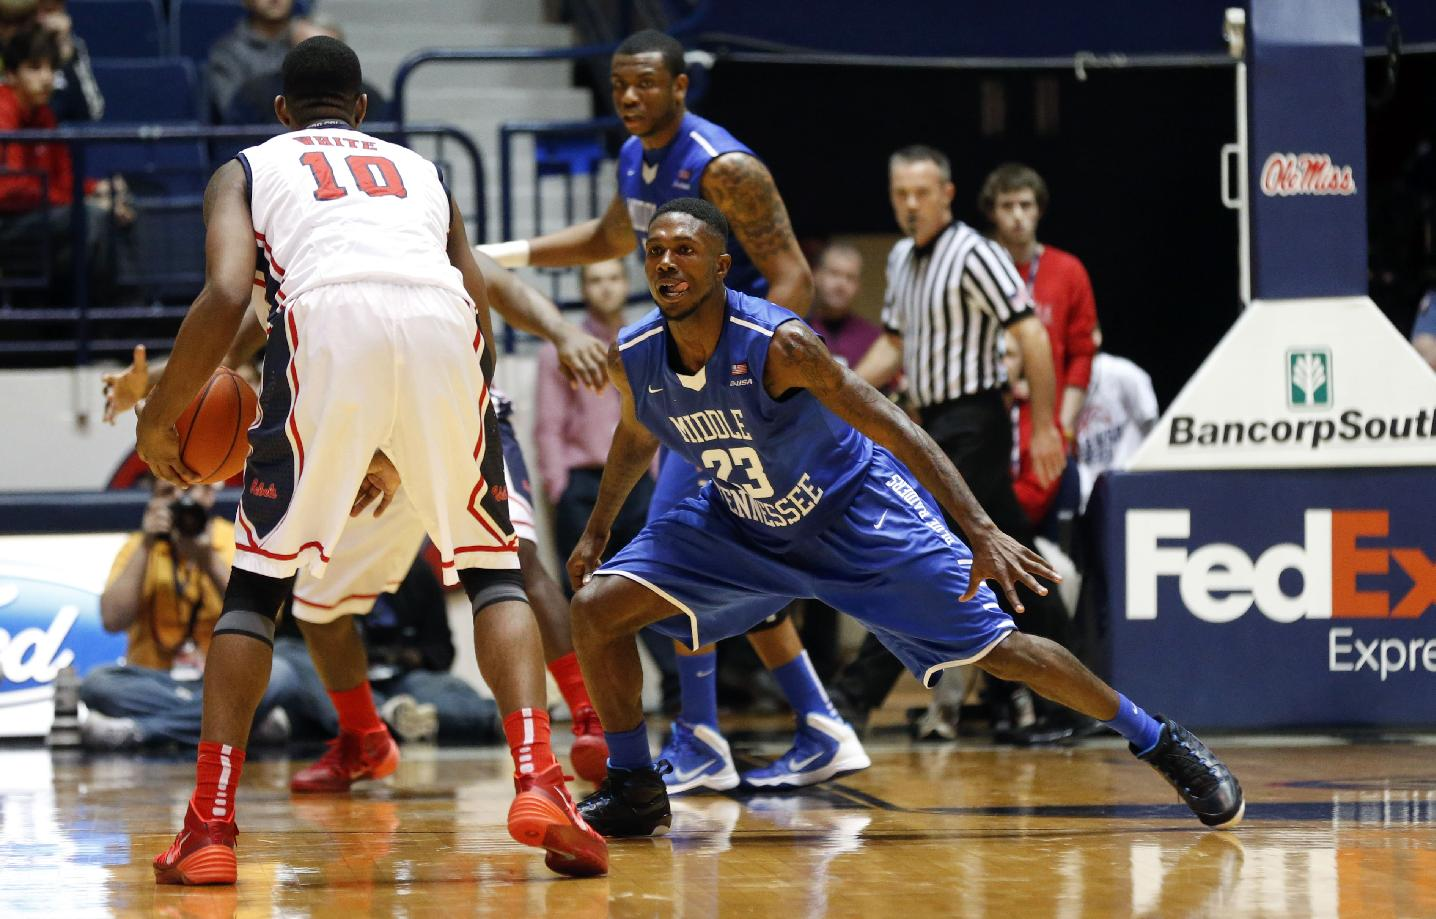 Middle Tennessee State guard Marcus Tarrance (23) defends against Mississippi guard LaDarius White (10) in the second half of an NCAA college basketball game in Oxford, Miss., Saturday, Dec. 14, 2013. Mississippi won 72-63